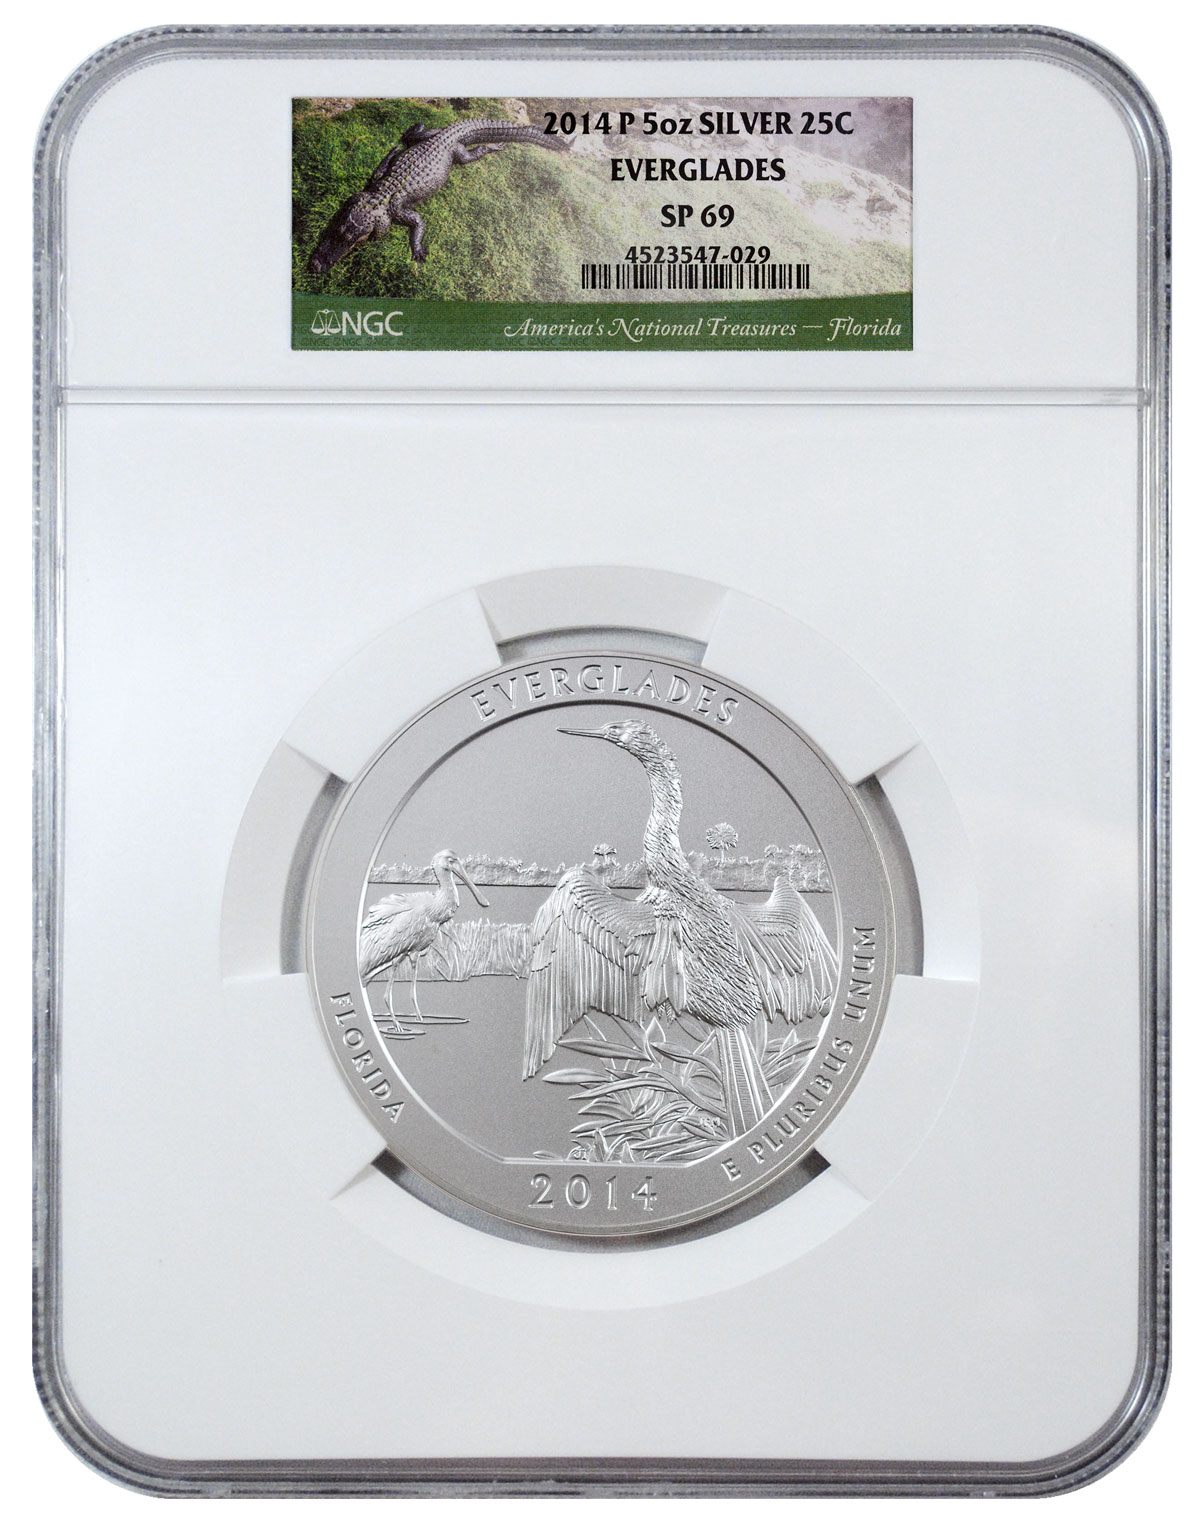 2014-P Everglades 5 oz. Silver America the Beautiful Specimen Coin NGC SP69